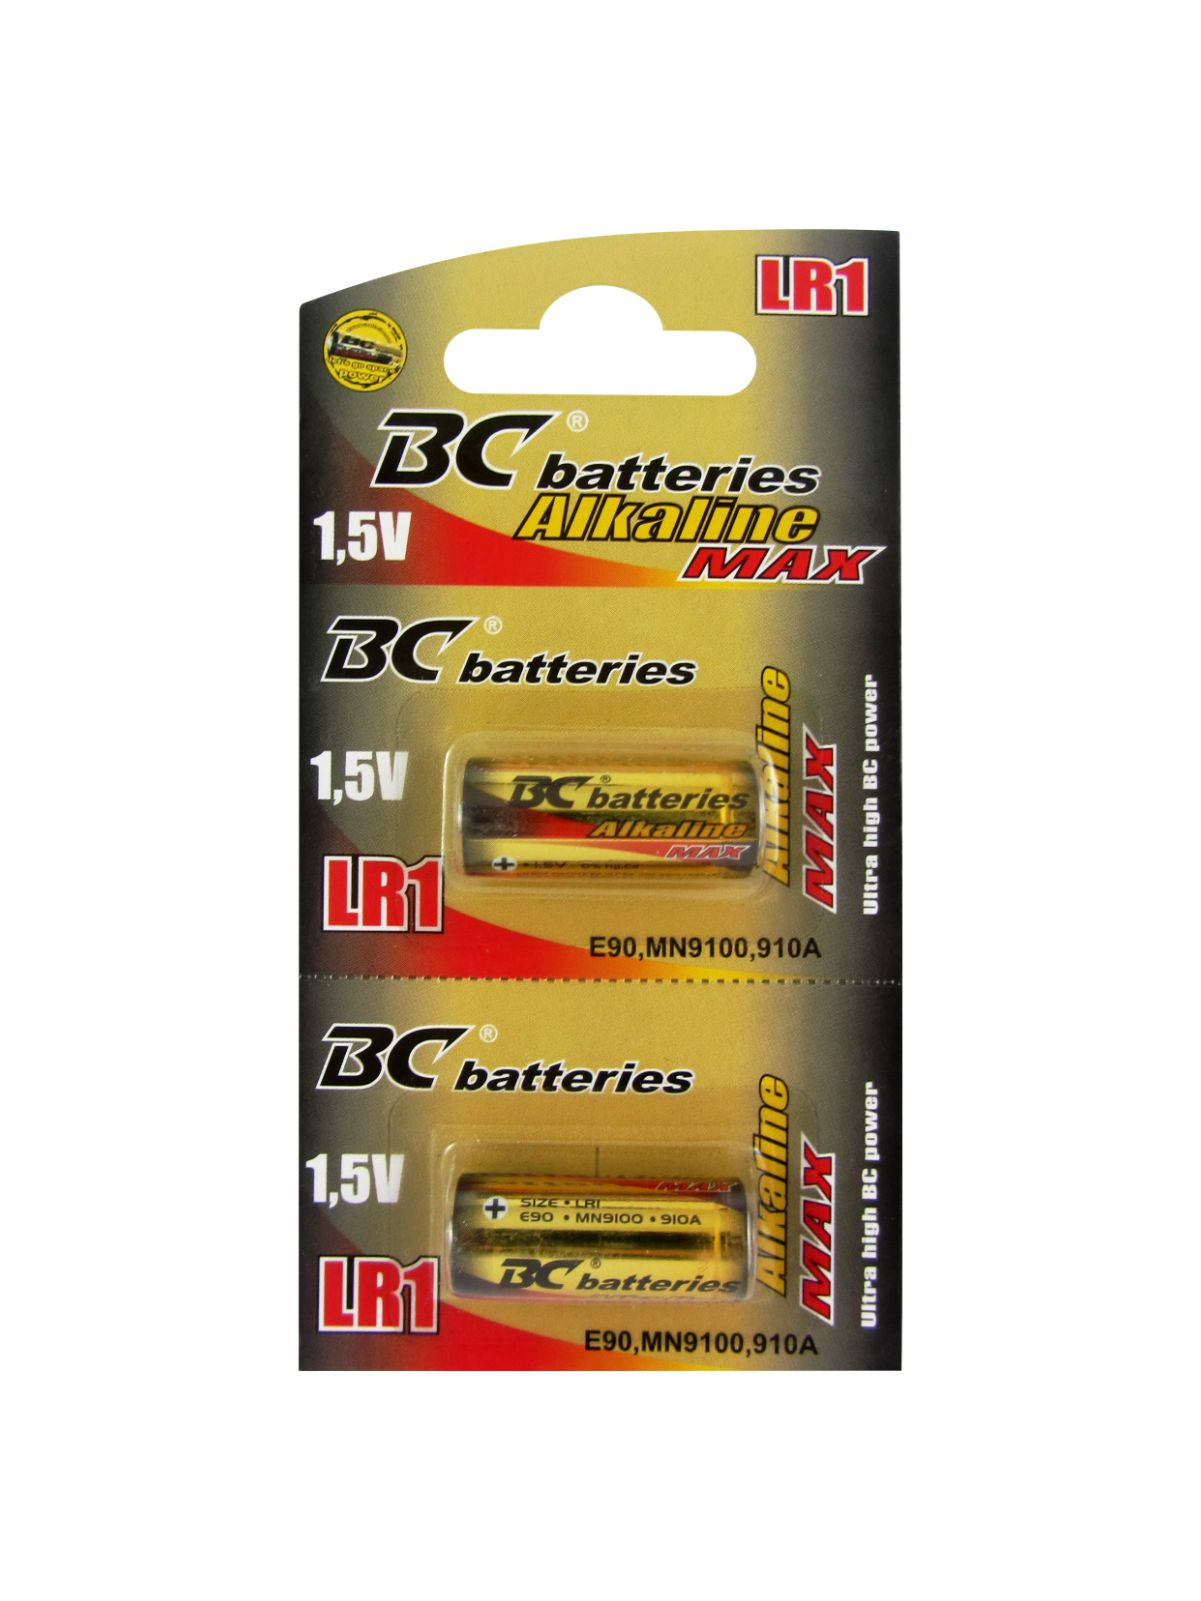 Alkaline 1,5V cylinder battery BCLR1/2BP